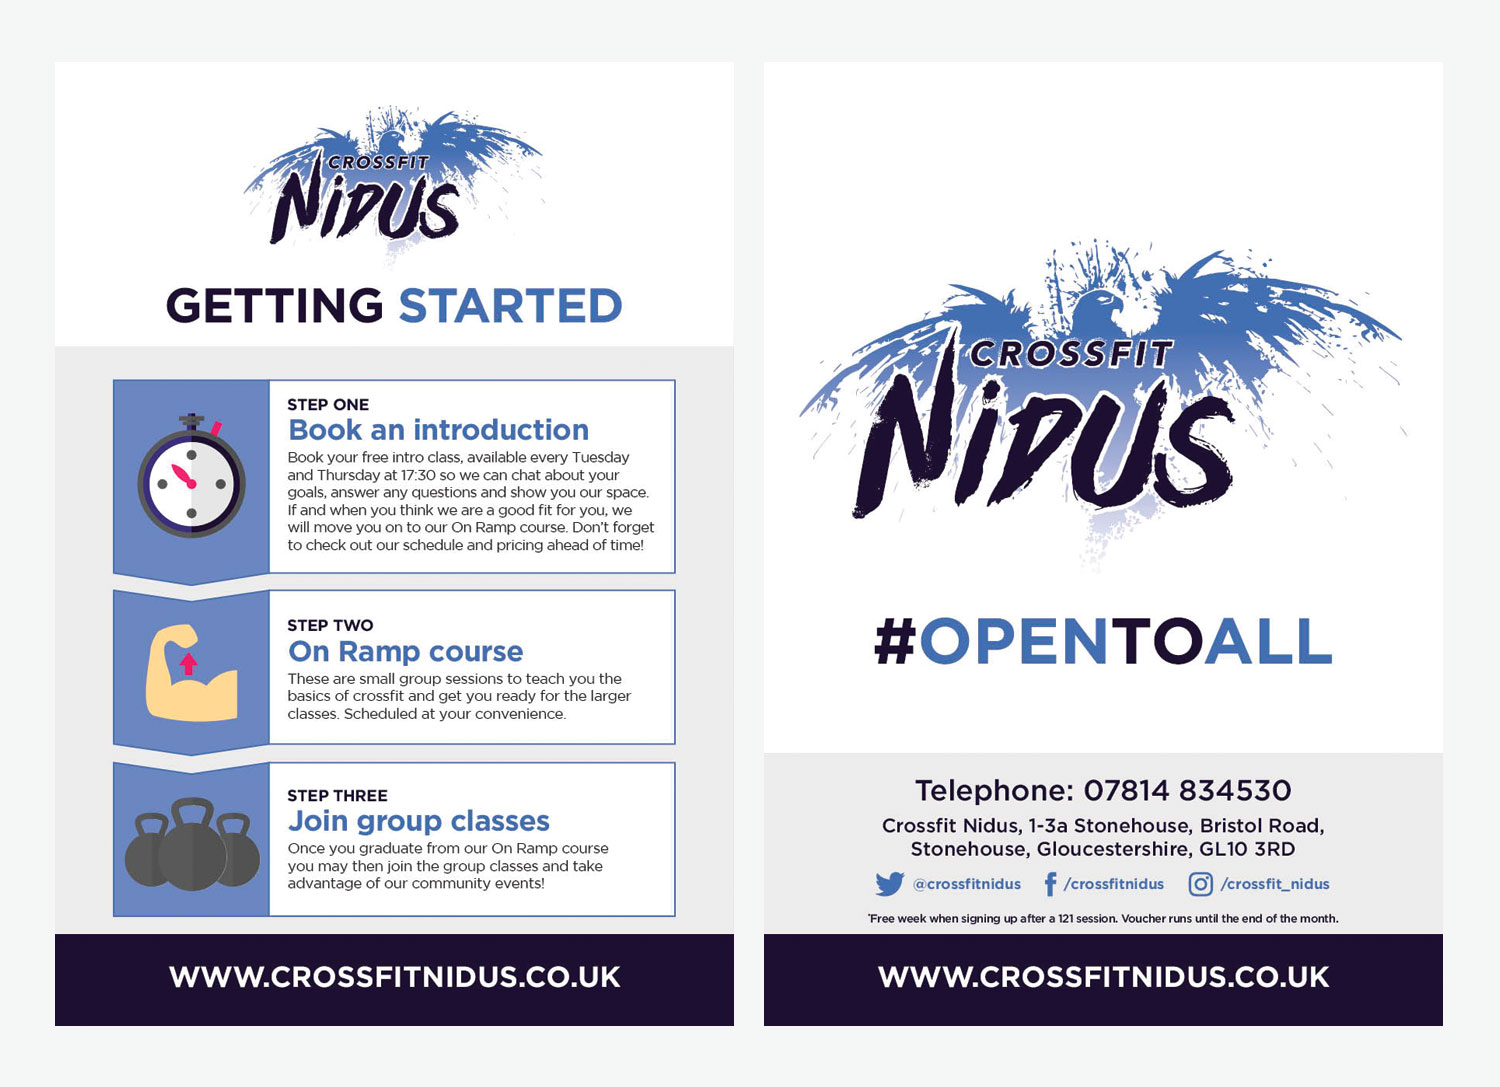 My Name is Dan Getting Started with Crossfit Leaflet for Crossfit Nidus